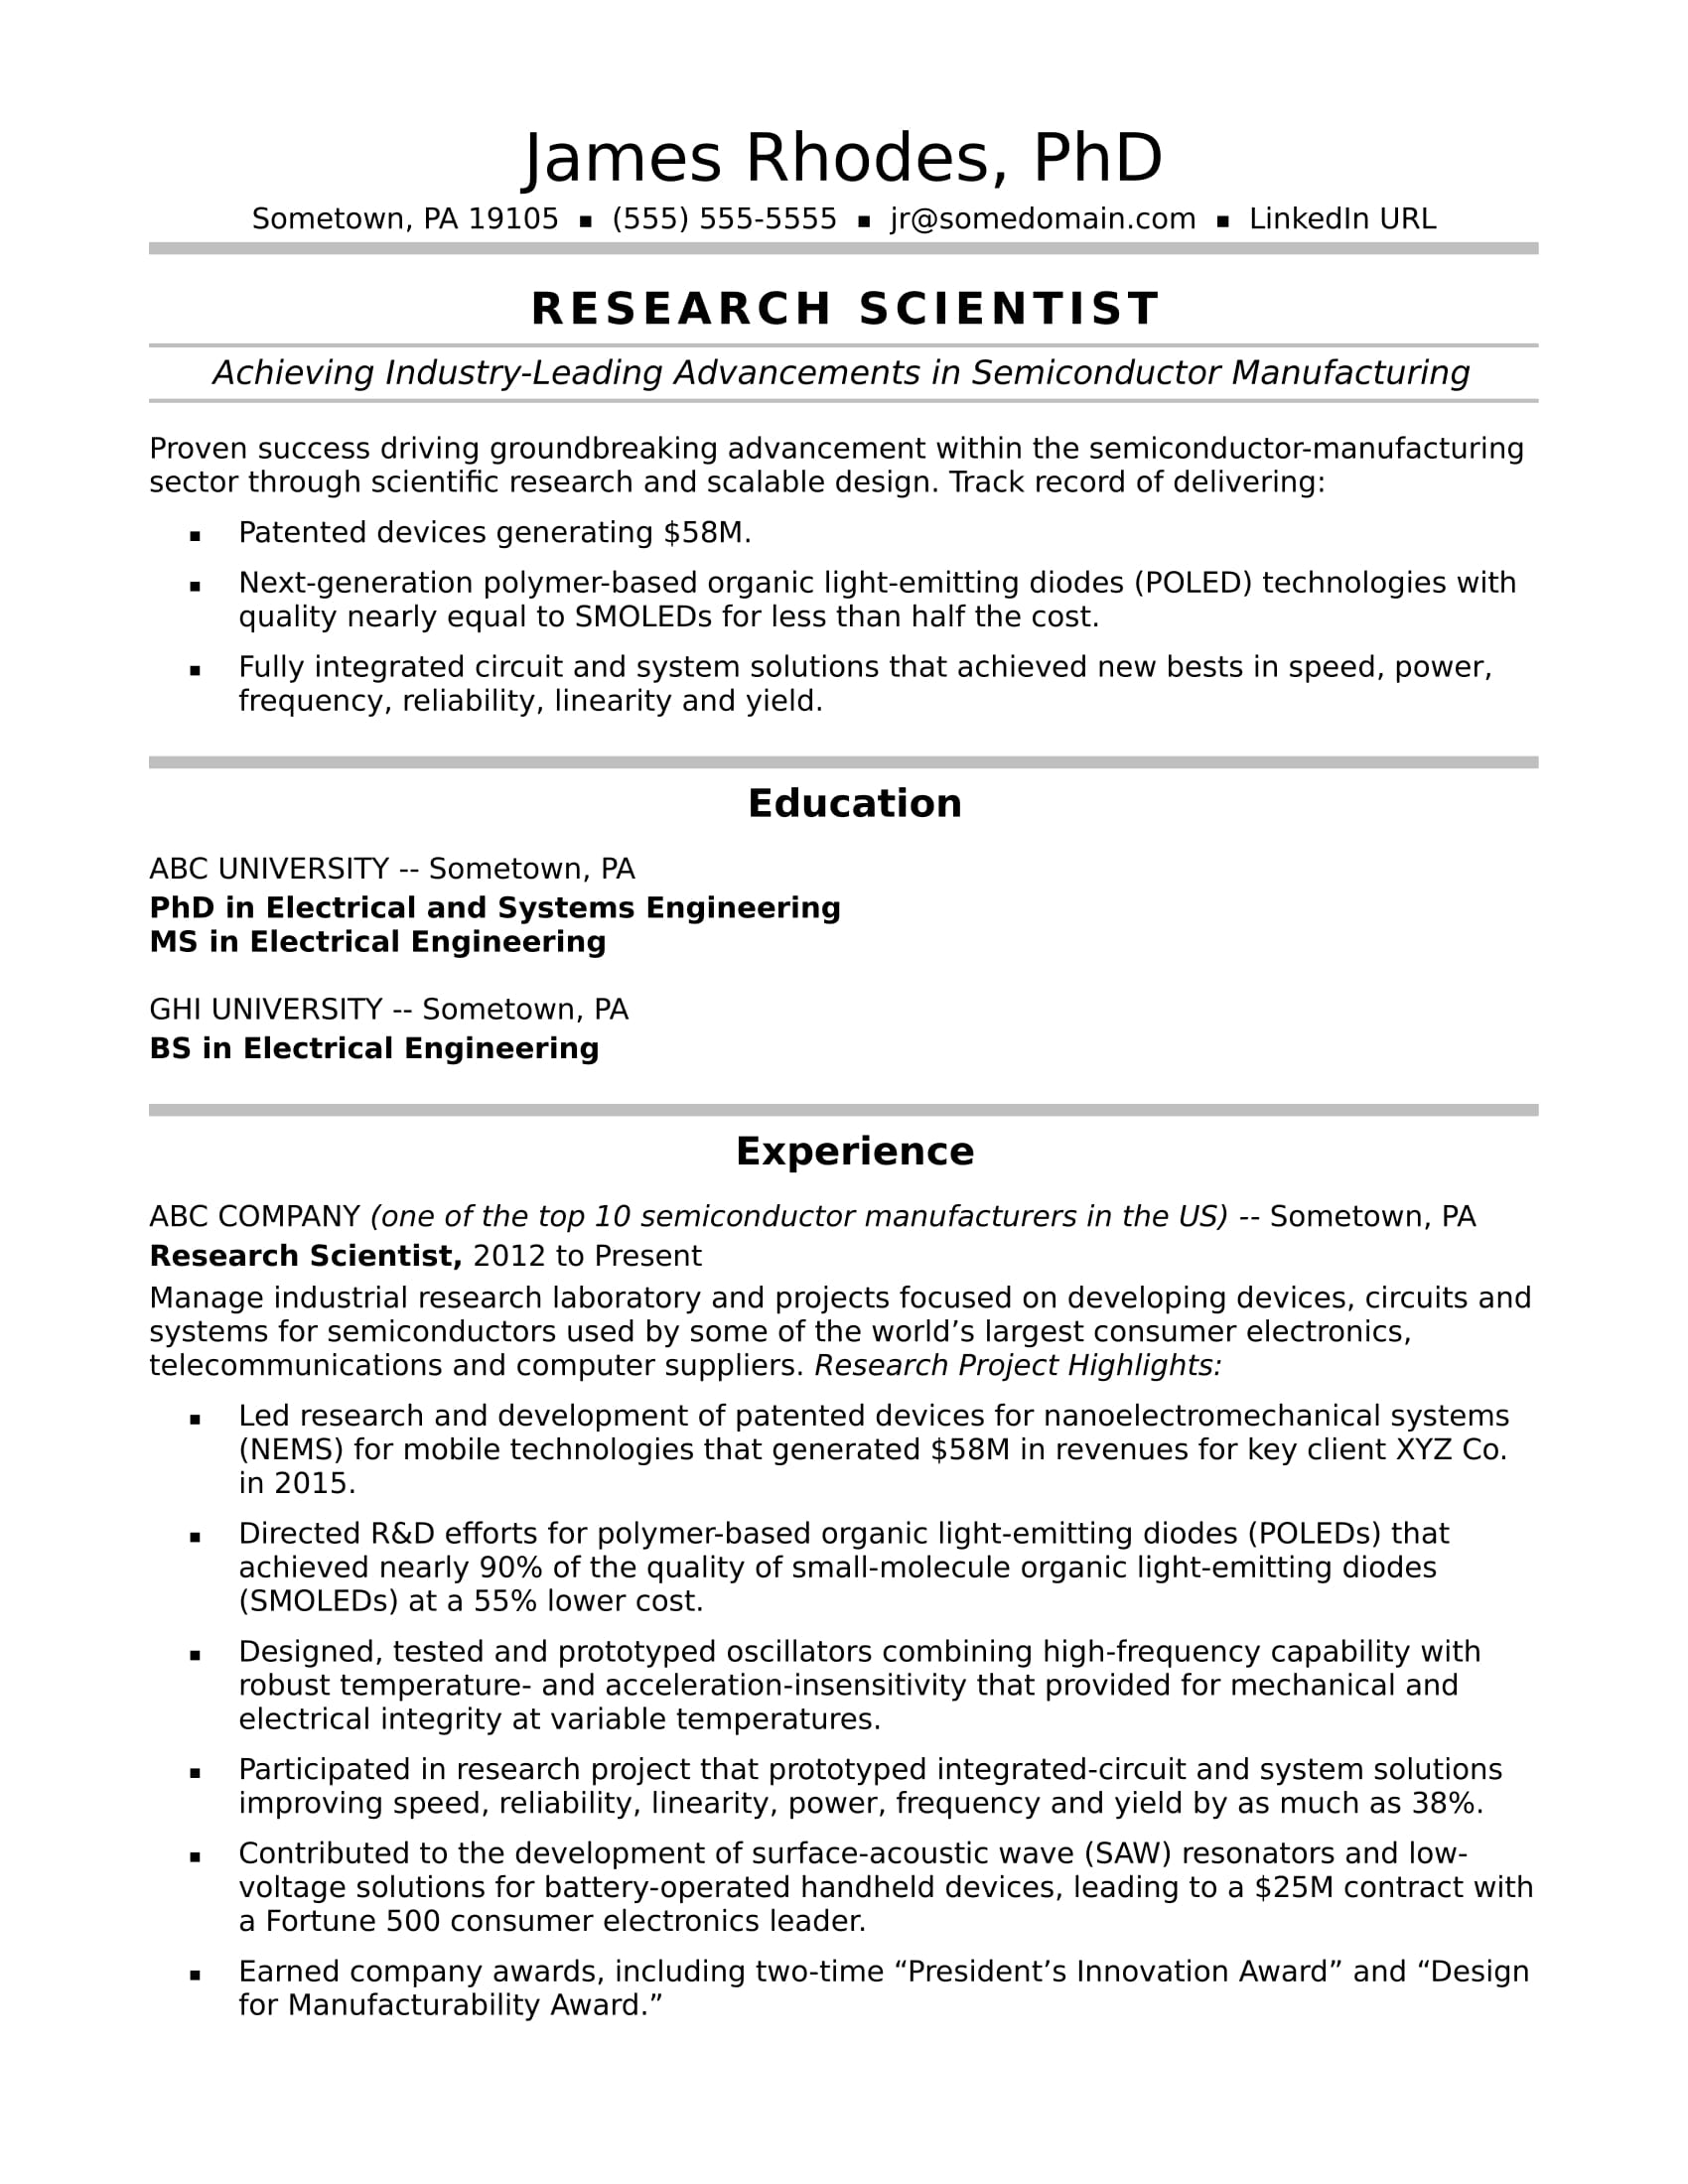 research scientist resume sample monster for position midlevel executive director Resume Resume For Research Position